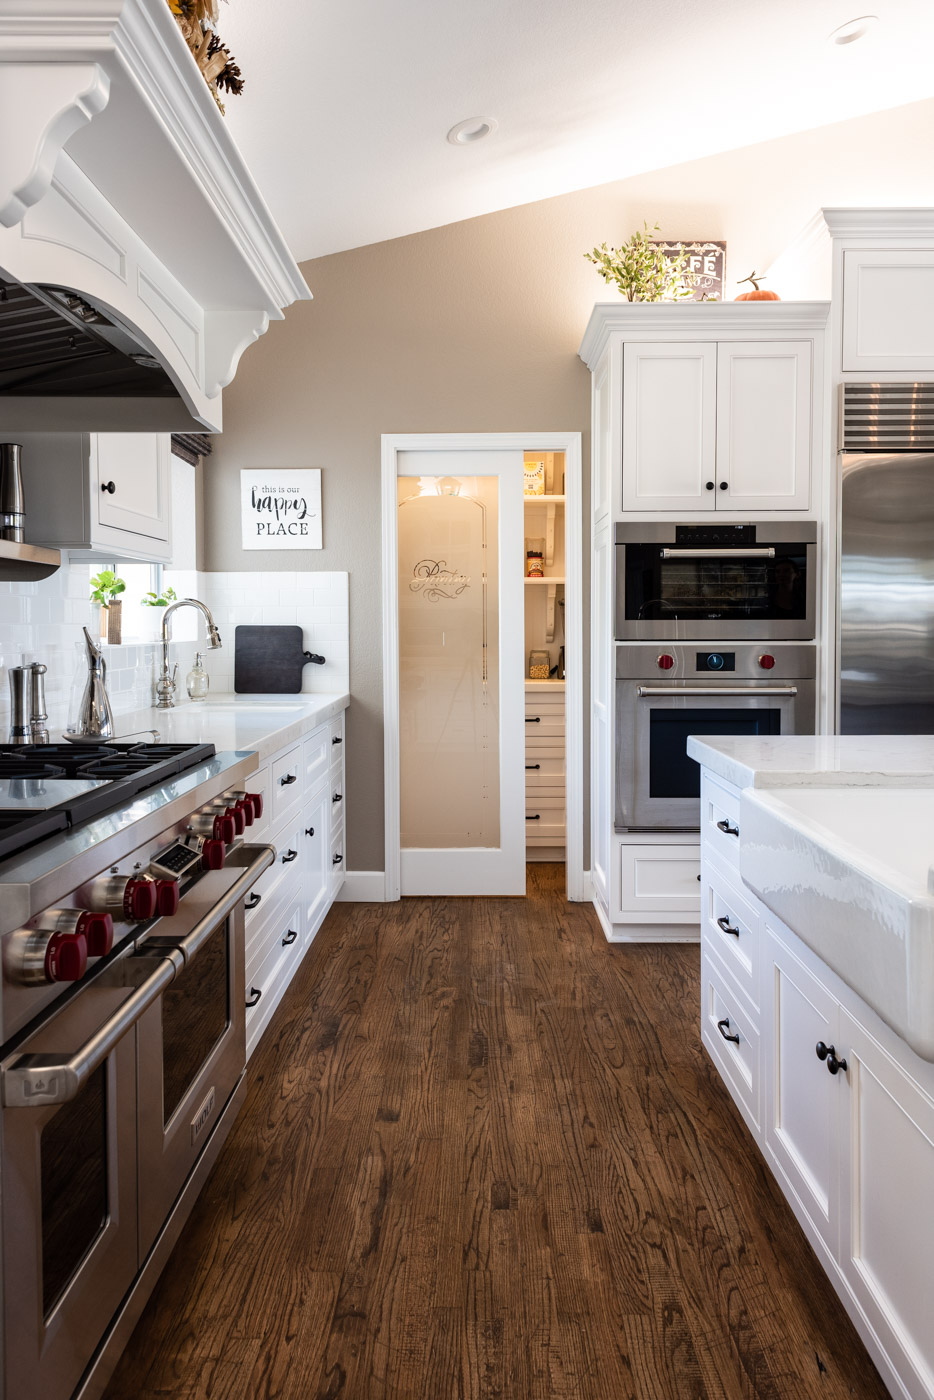 Transitional Country Cottage style kitchen with white recessed panel painted cabinets and custom pantry door